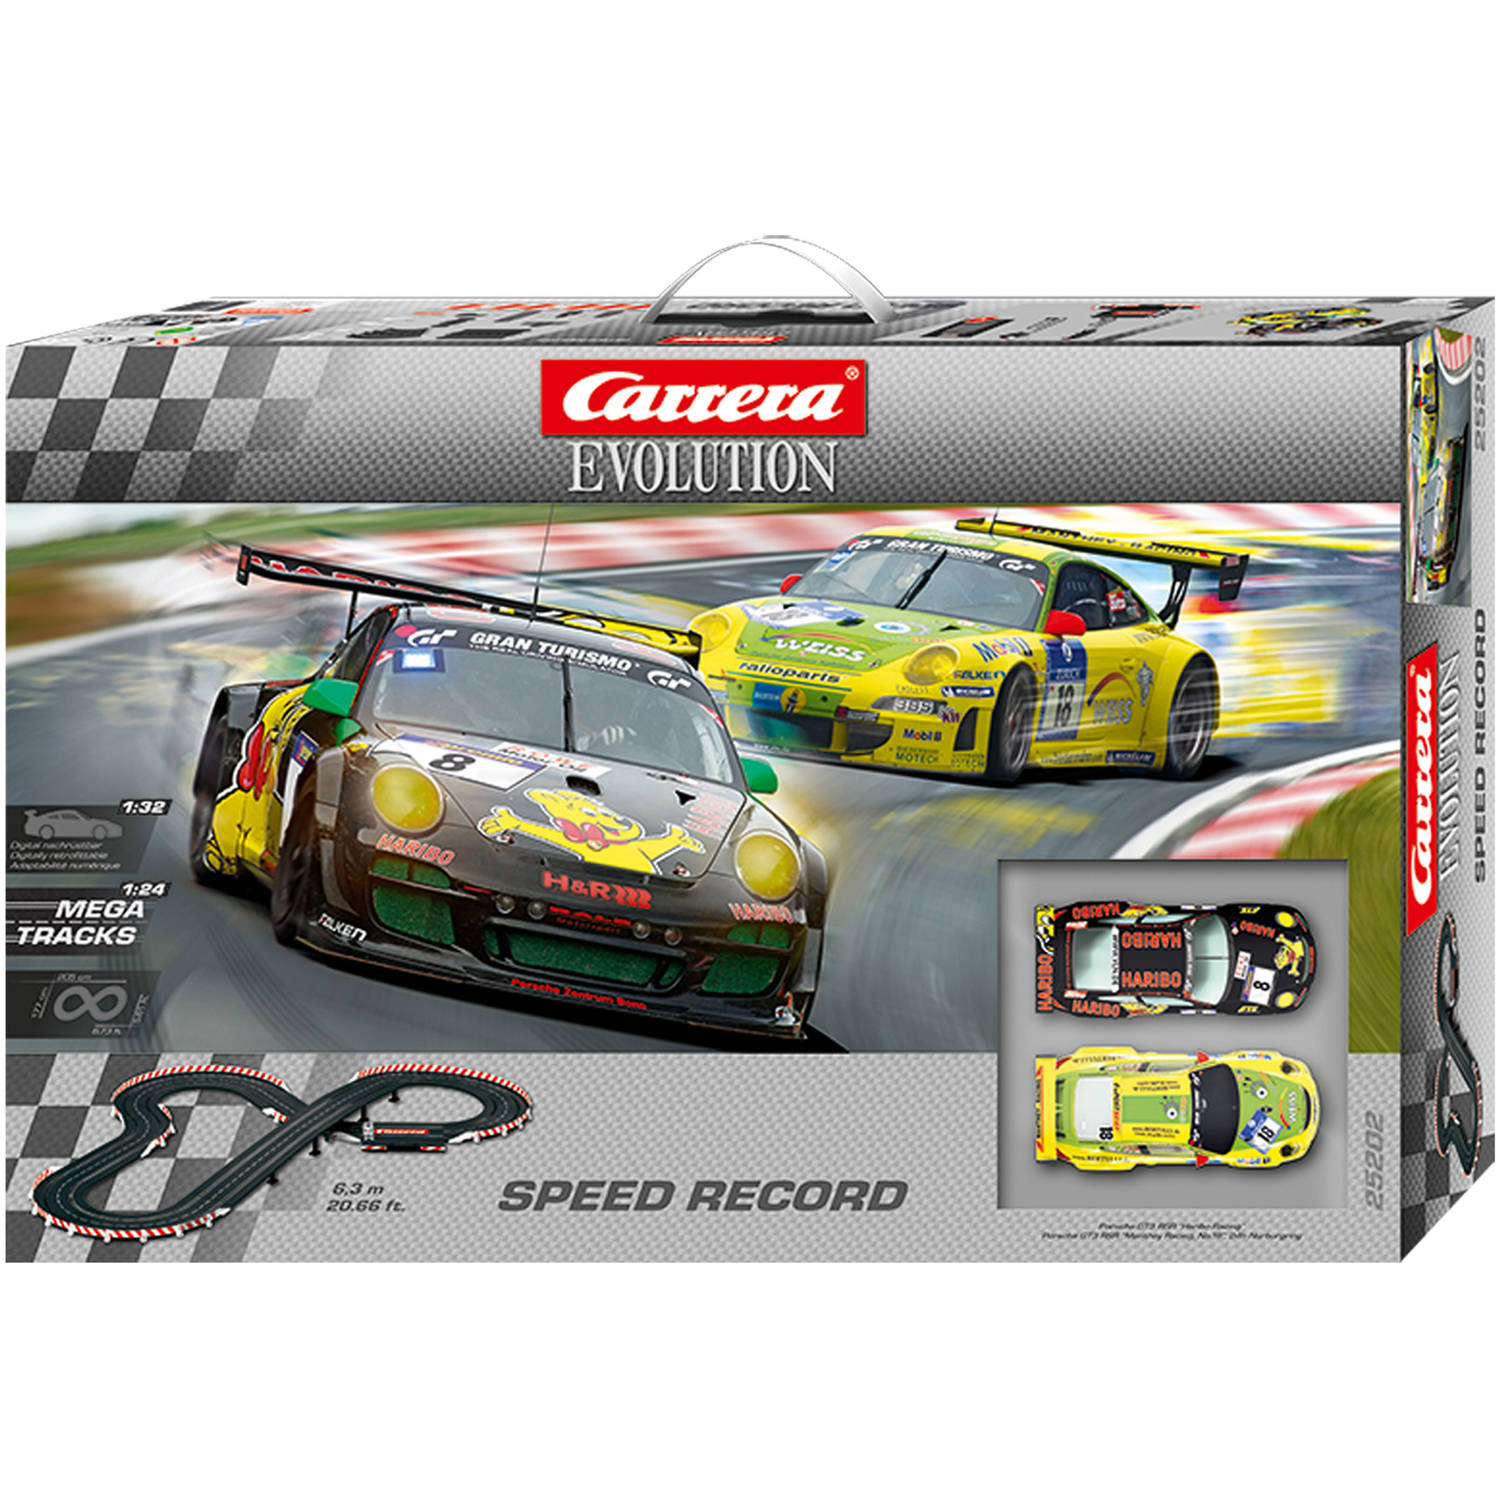 carrera speed record evolution 1 32 scale slot car race. Black Bedroom Furniture Sets. Home Design Ideas